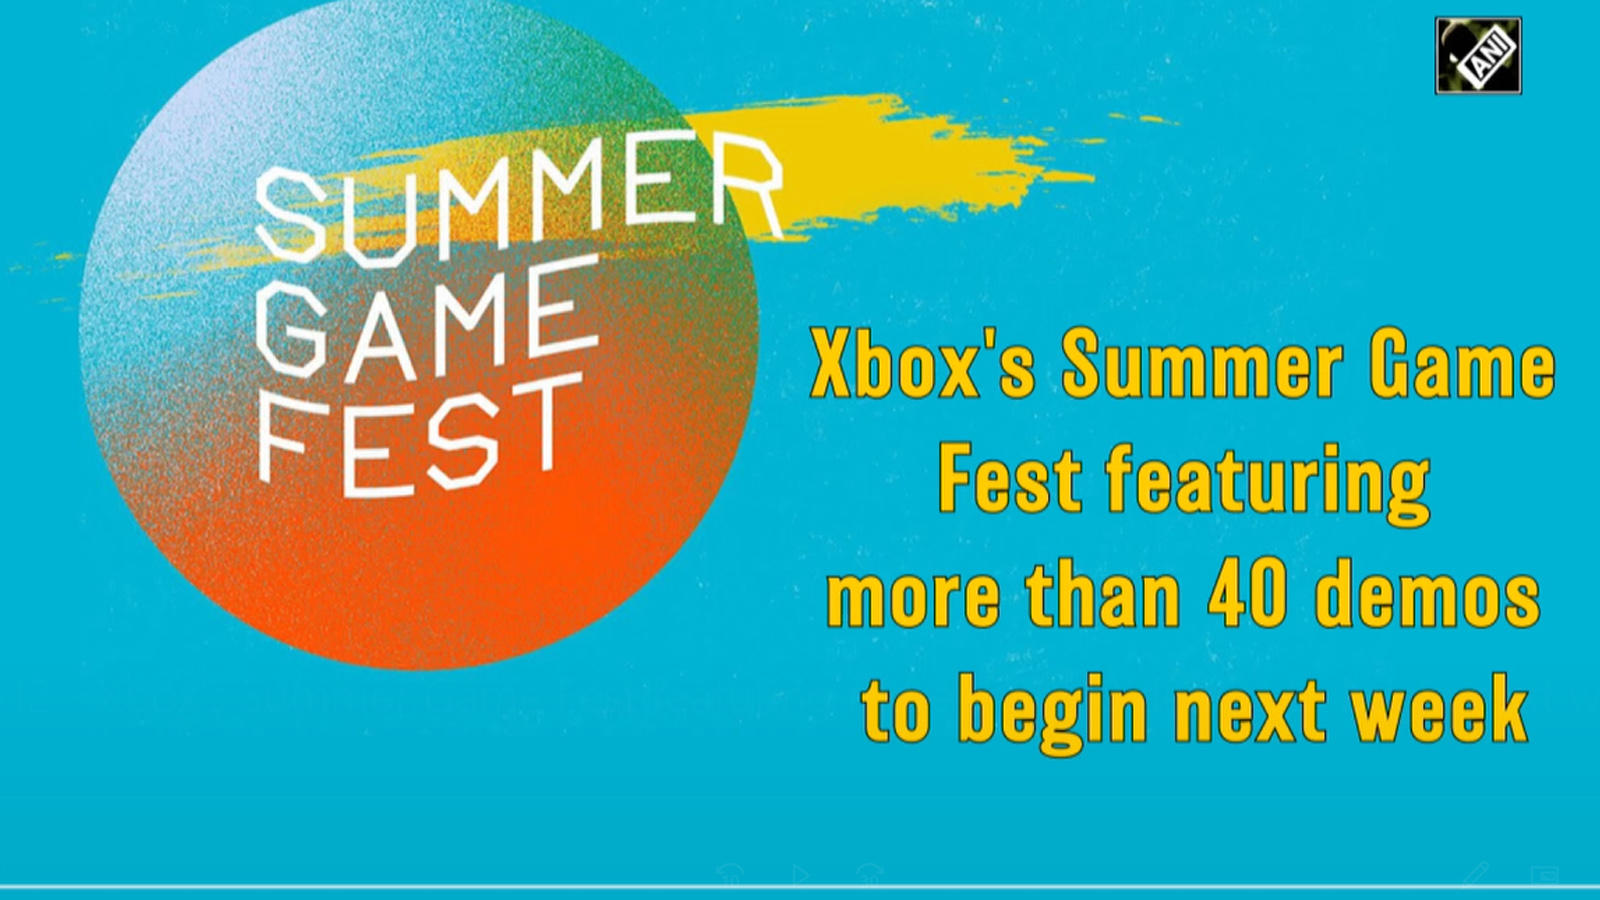 xboxs-summer-game-fest-featuring-more-than-40-demos-to-begin-next-week